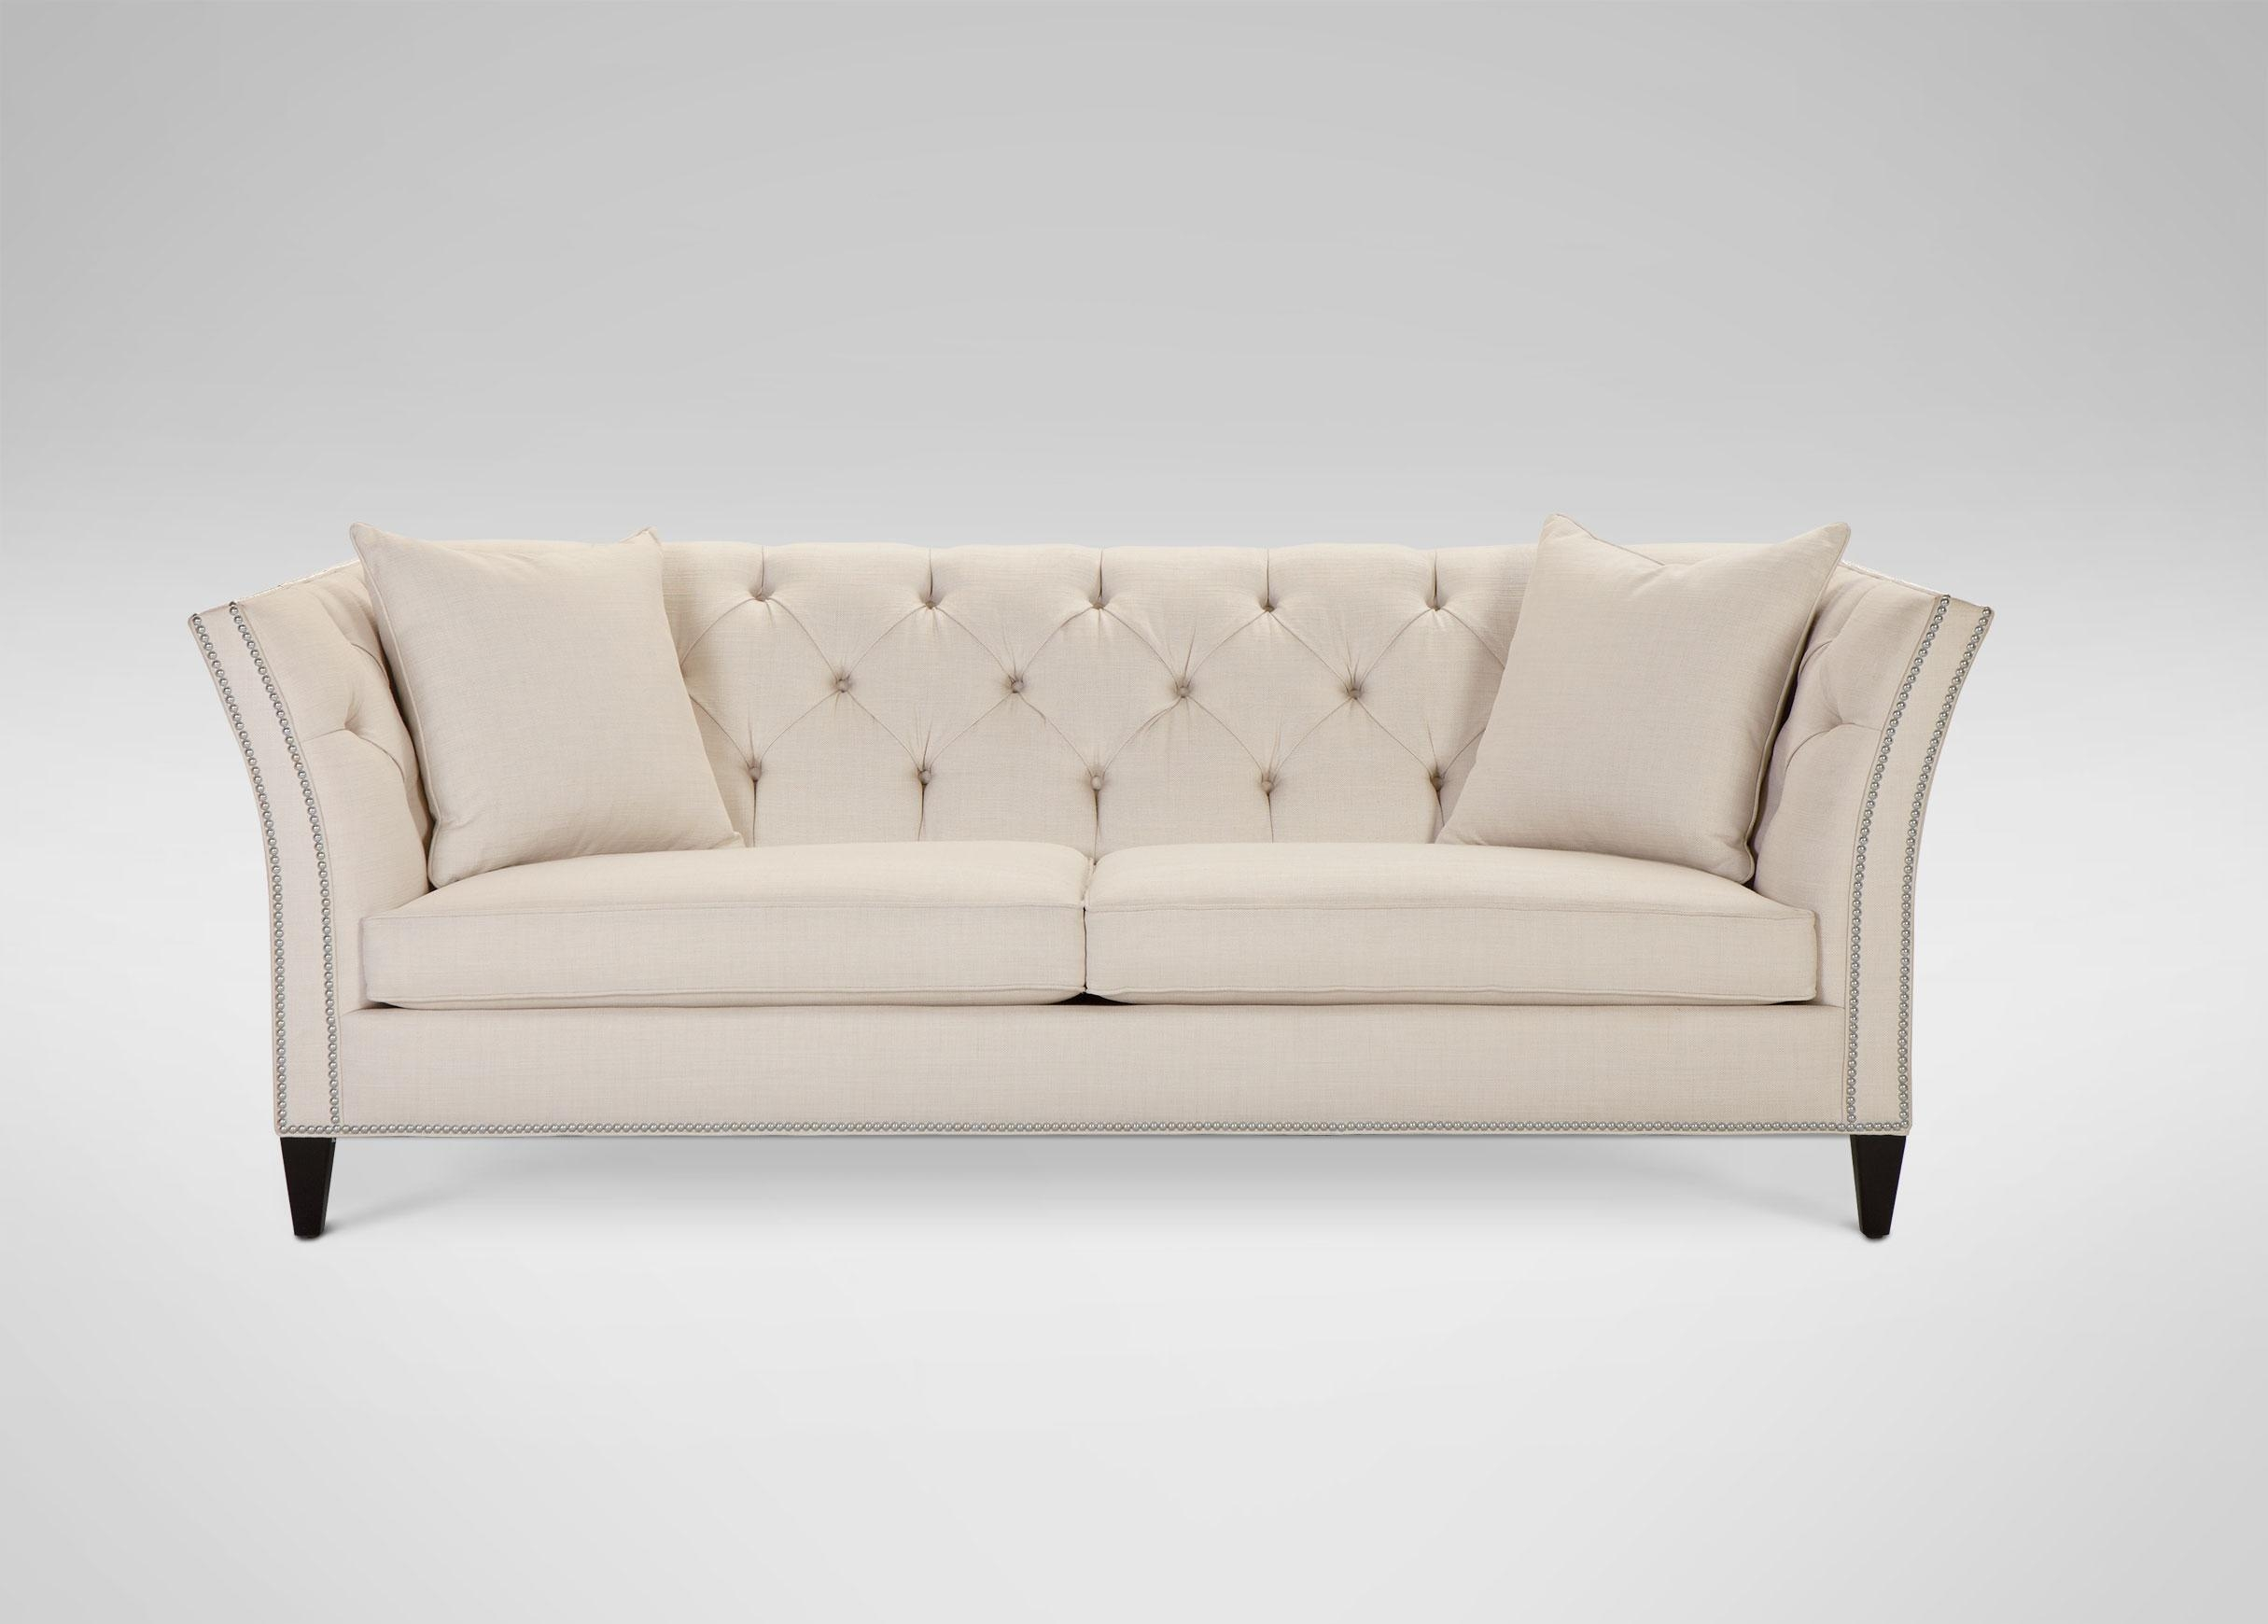 chesterfield sofa material best beds nyc 20 inspirations ethan allen sofas ideas